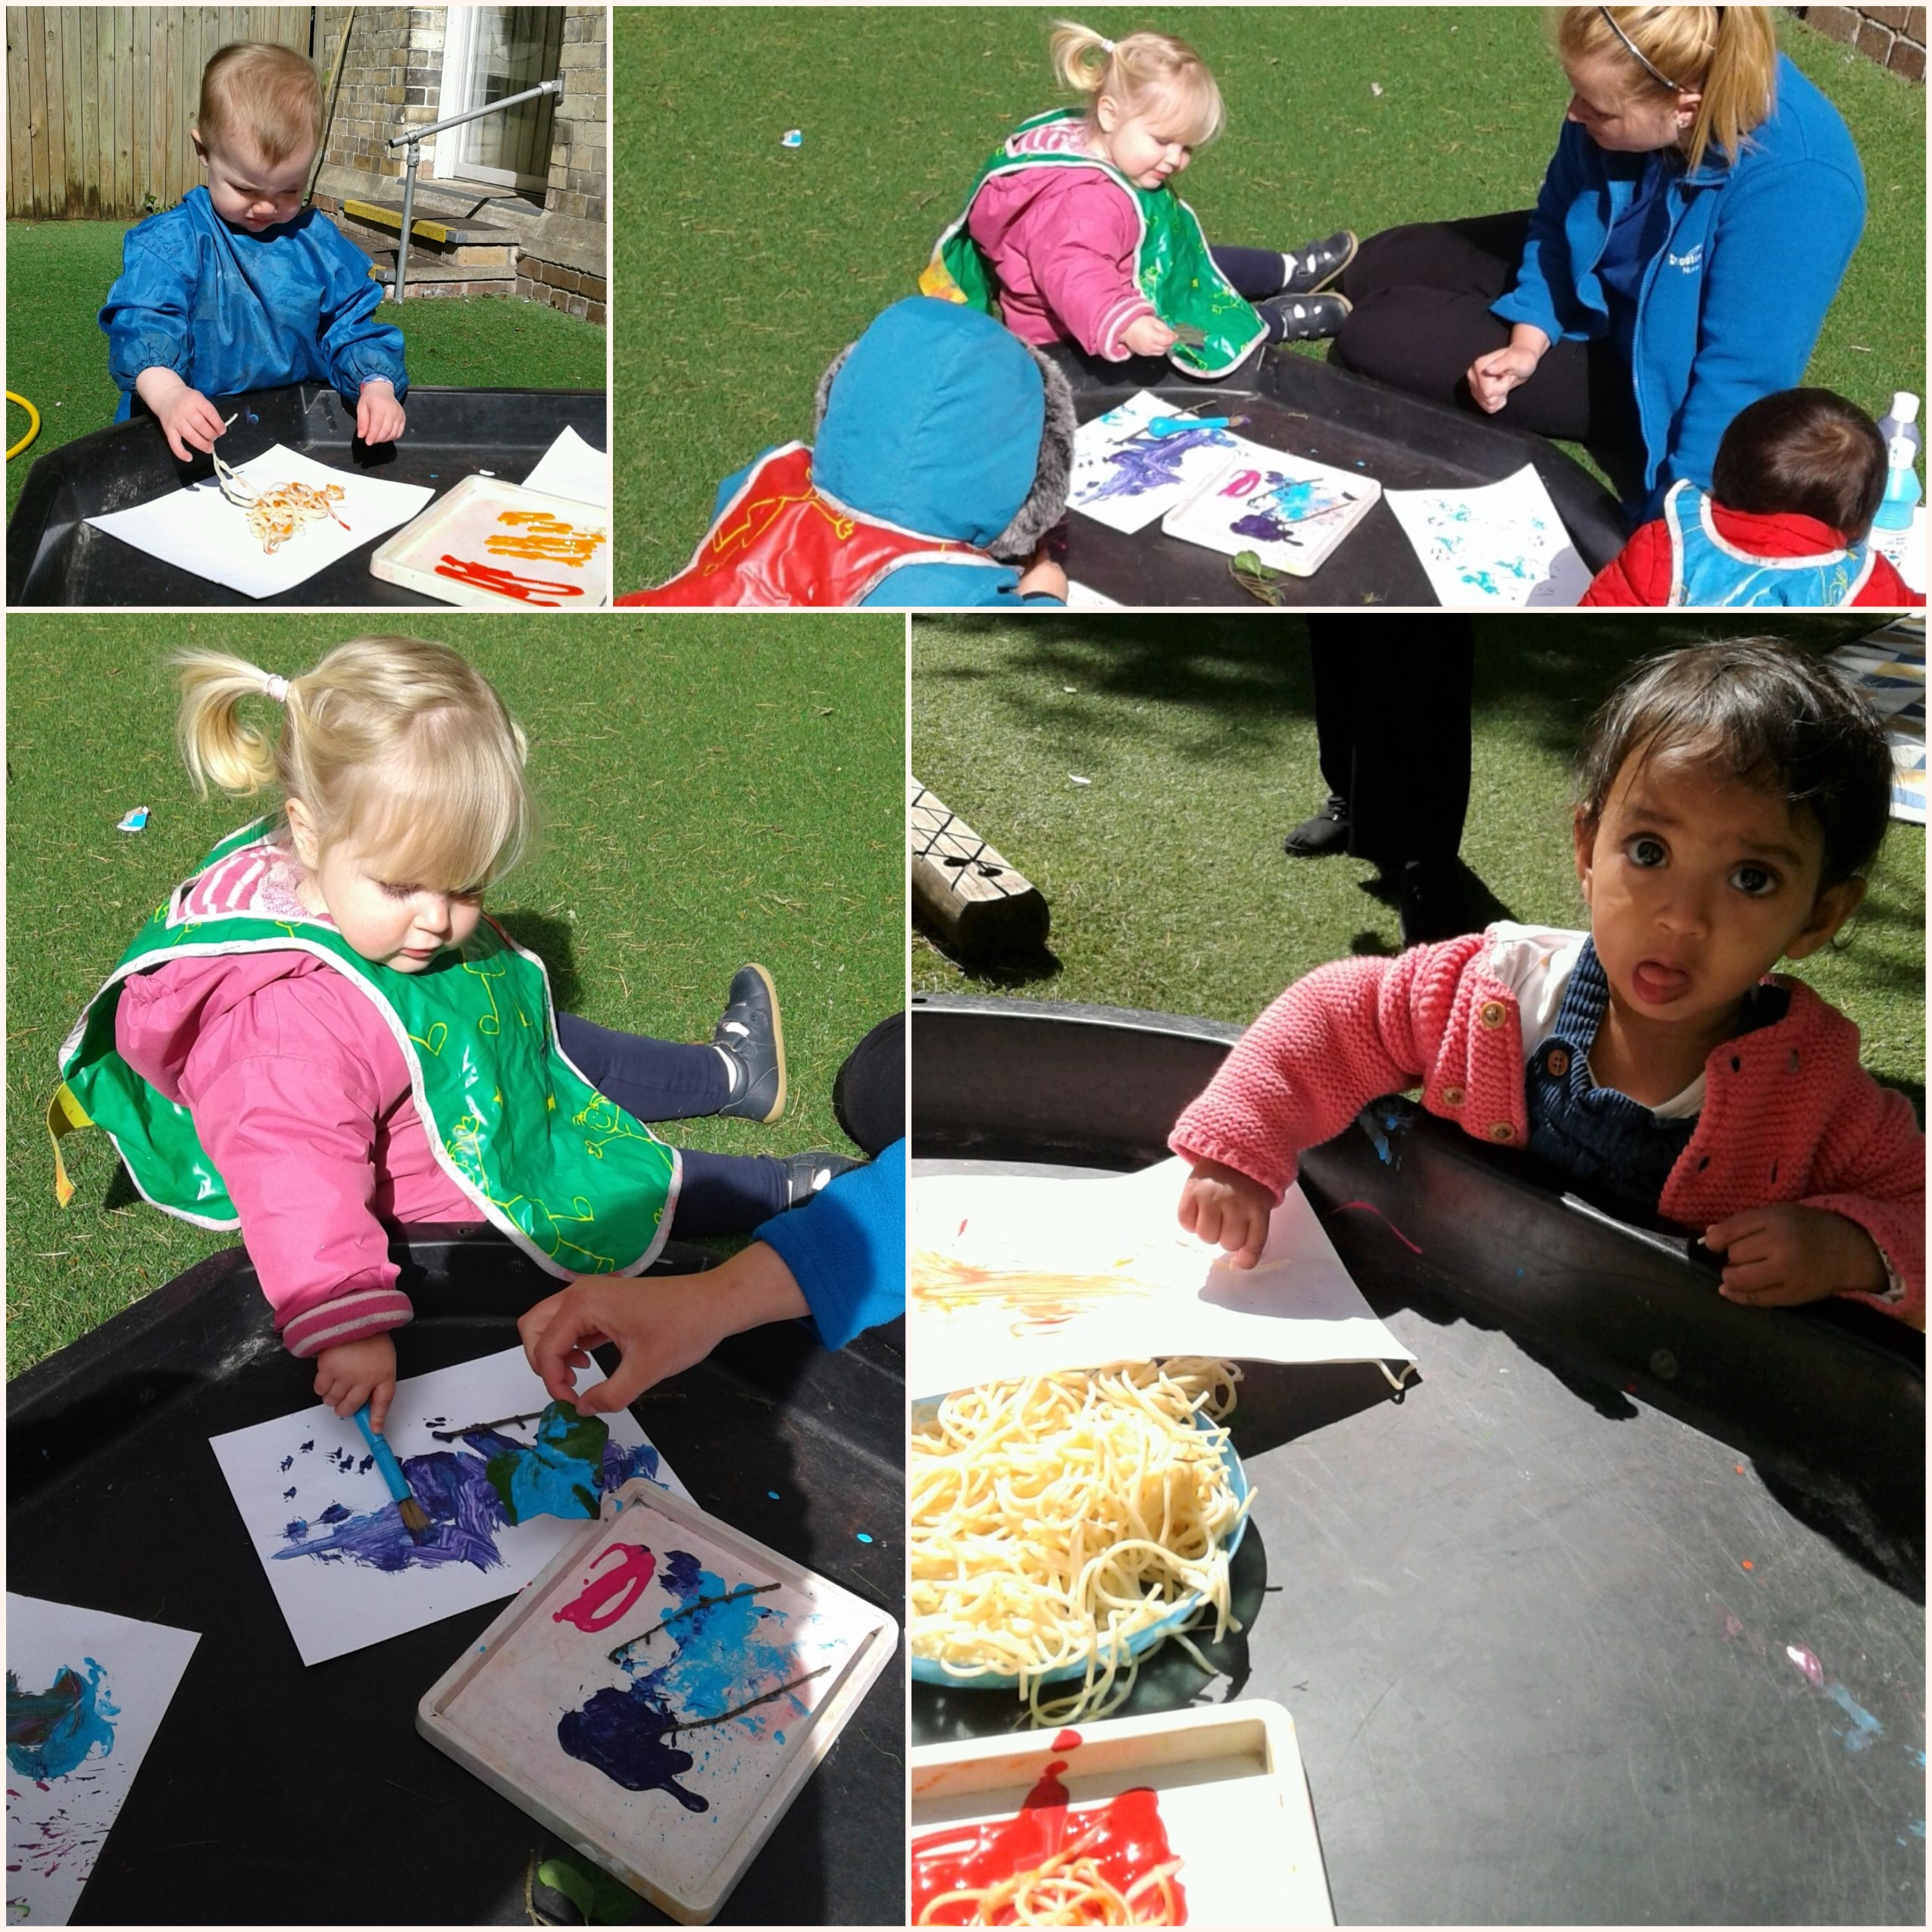 This week we have had lots of fun exploring in the garden with different mark making activities.